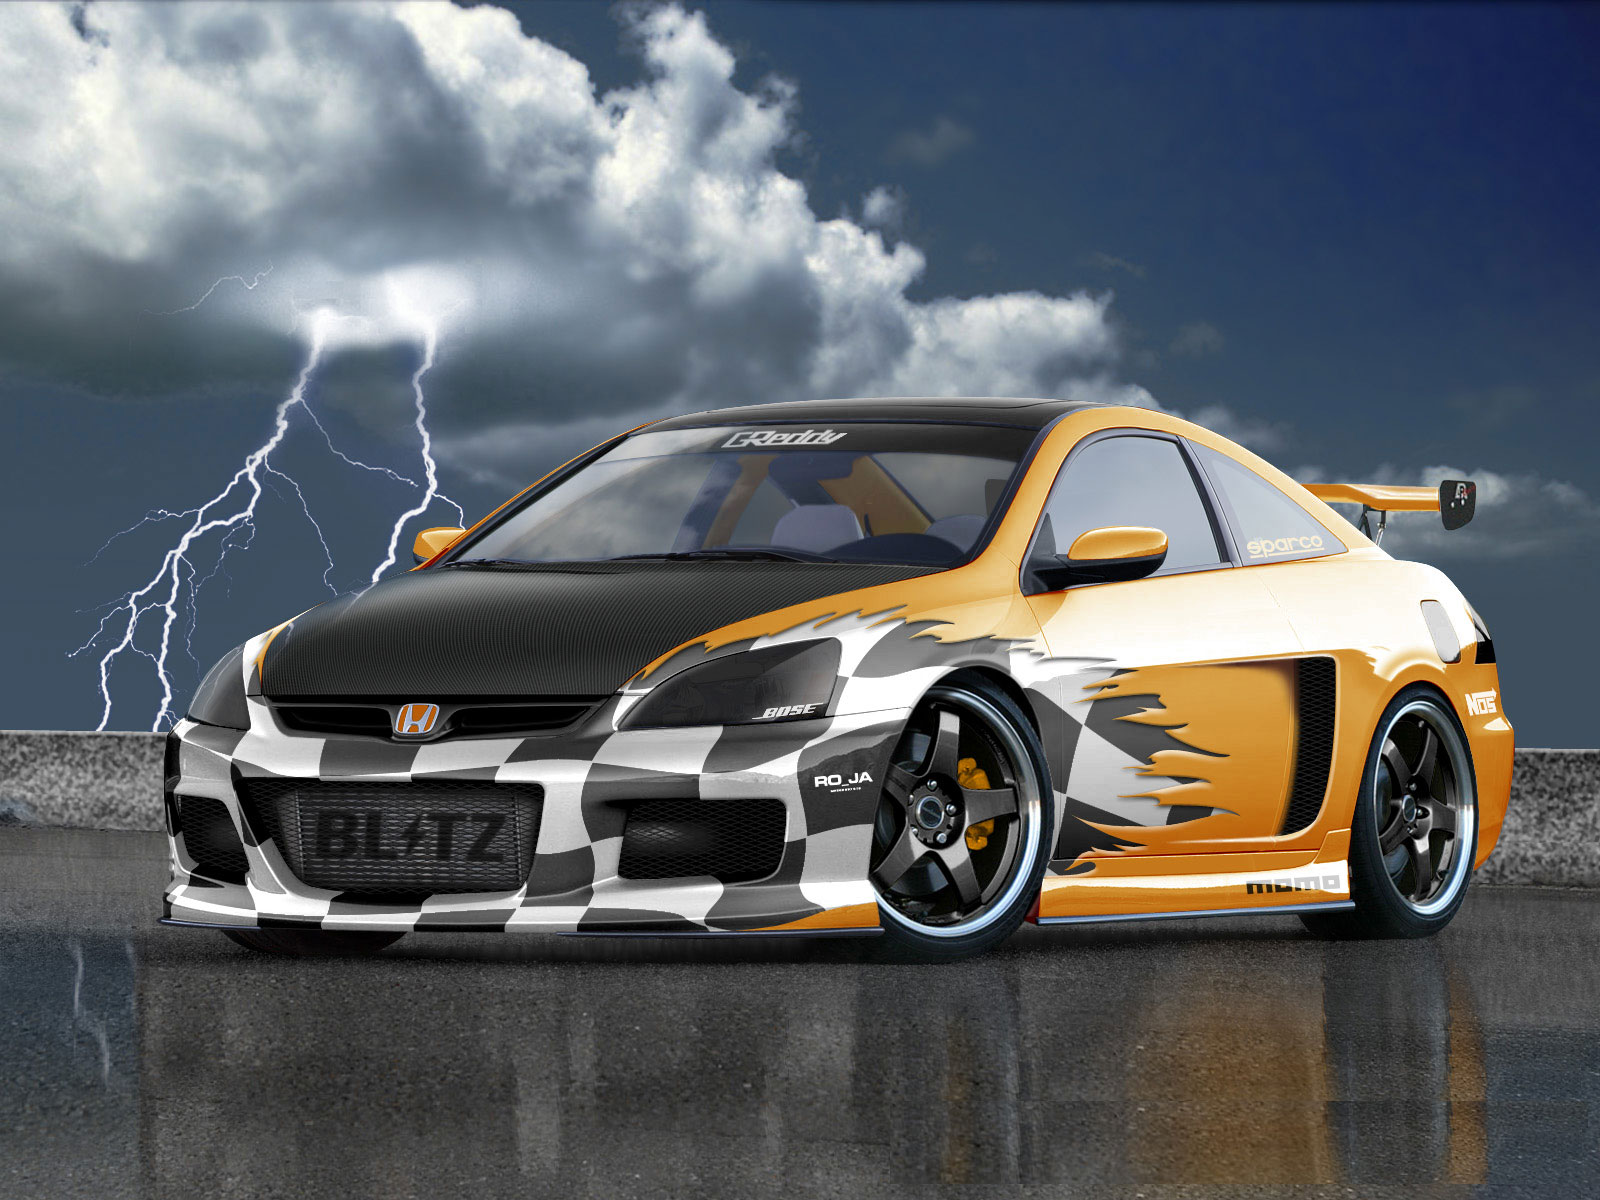 Hd Car wallpapers cool fast cars wallpapers 1600x1200